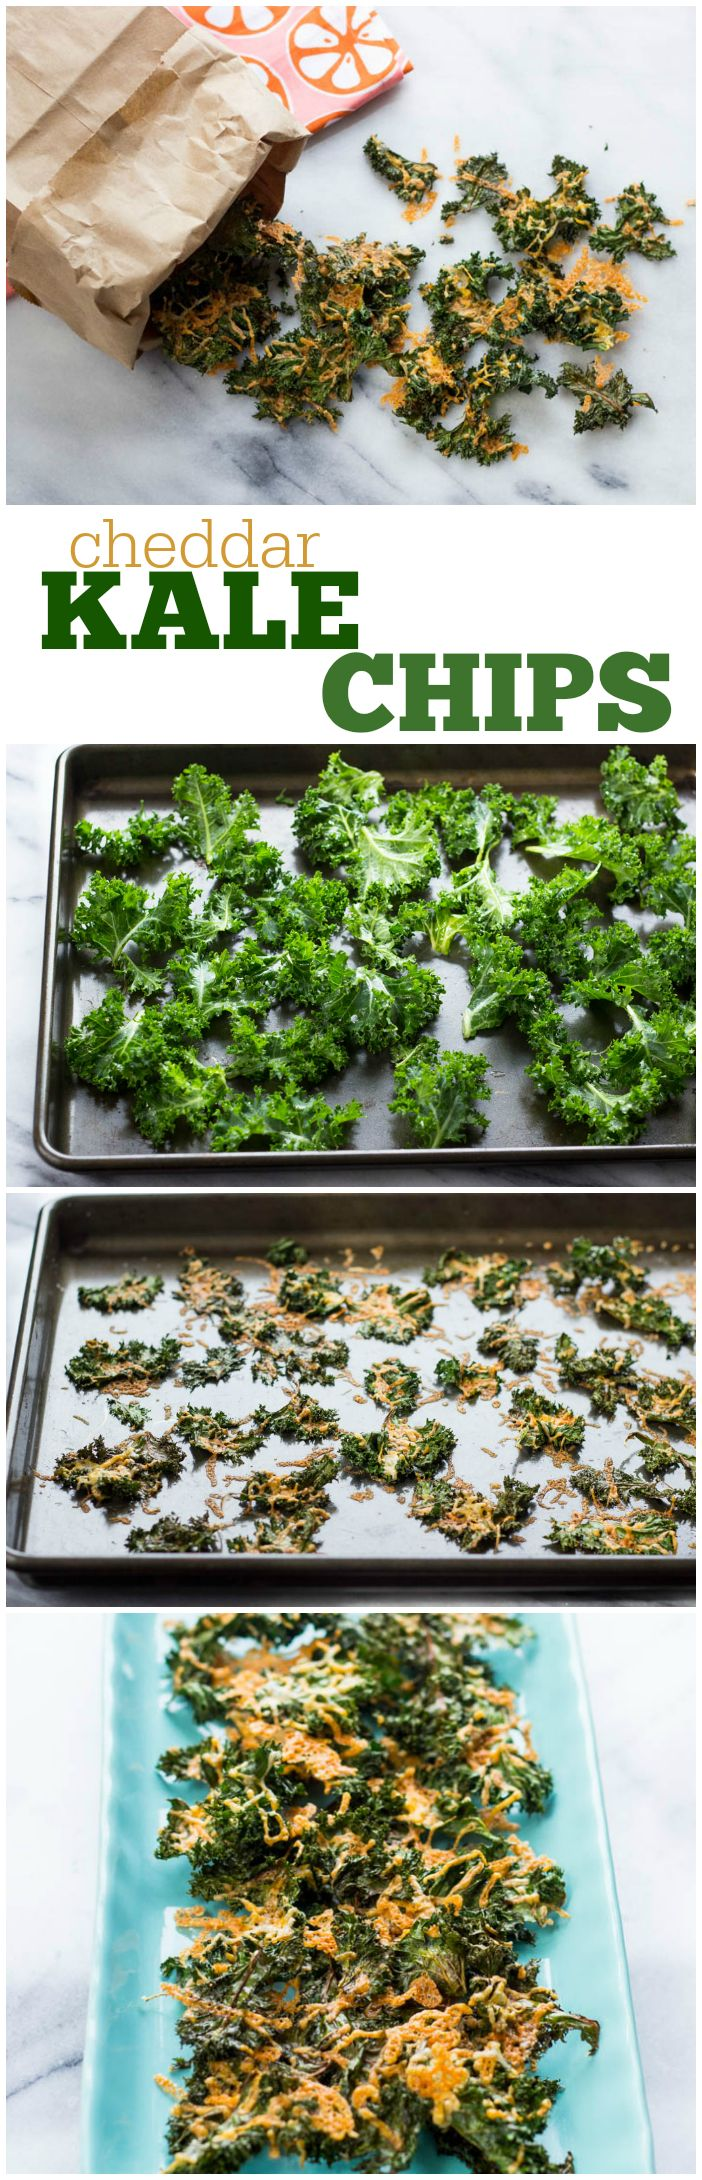 Switch potato chips for healthier kale chips!